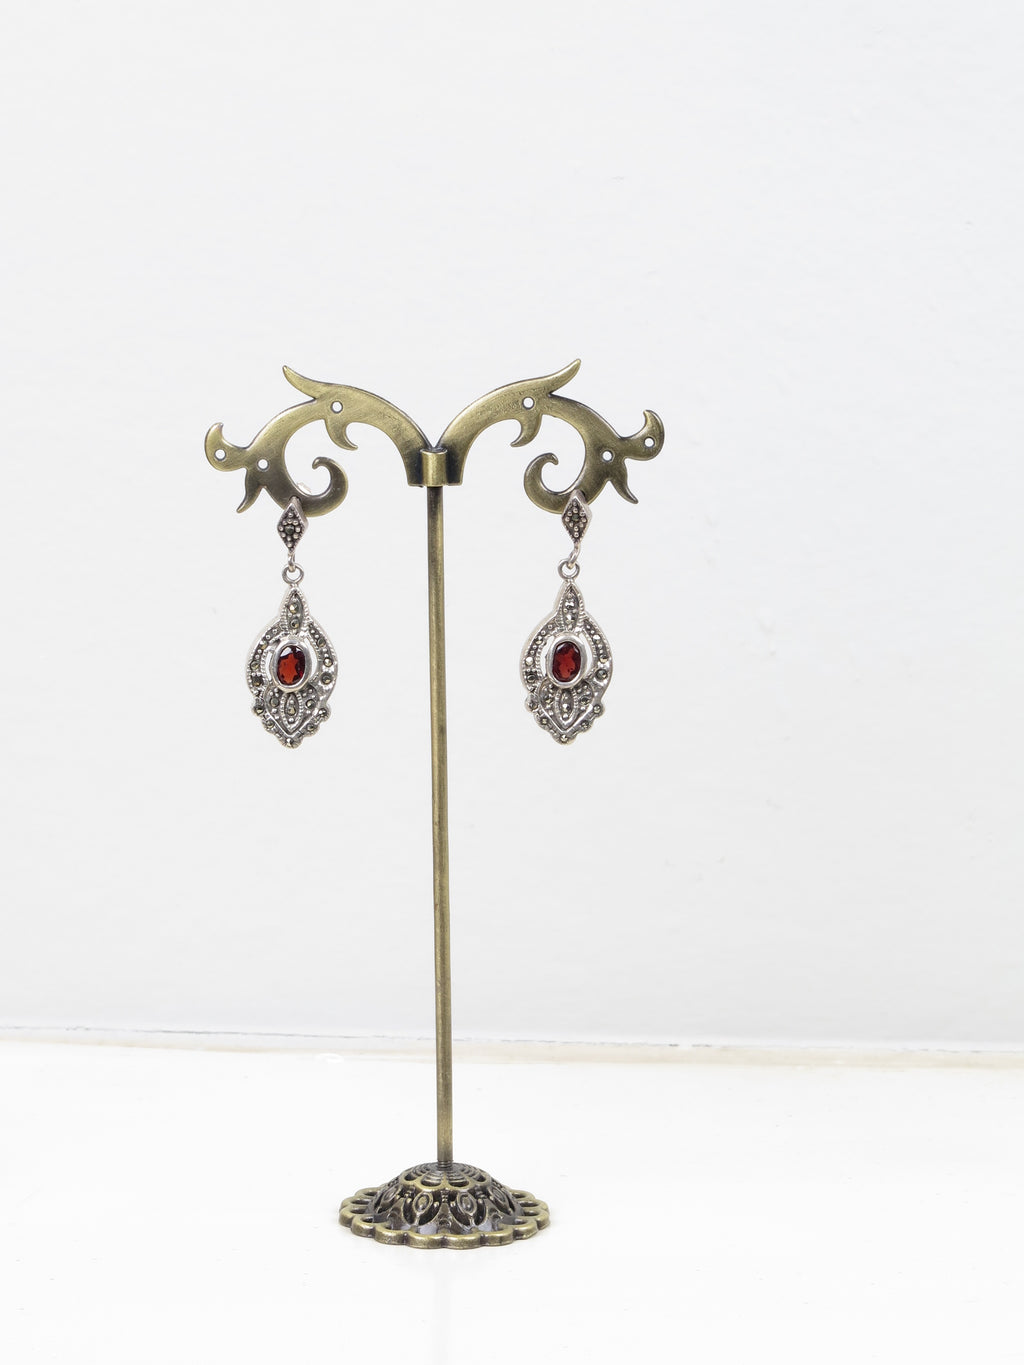 Marcacite & Garnet Art Deco Style Earrings